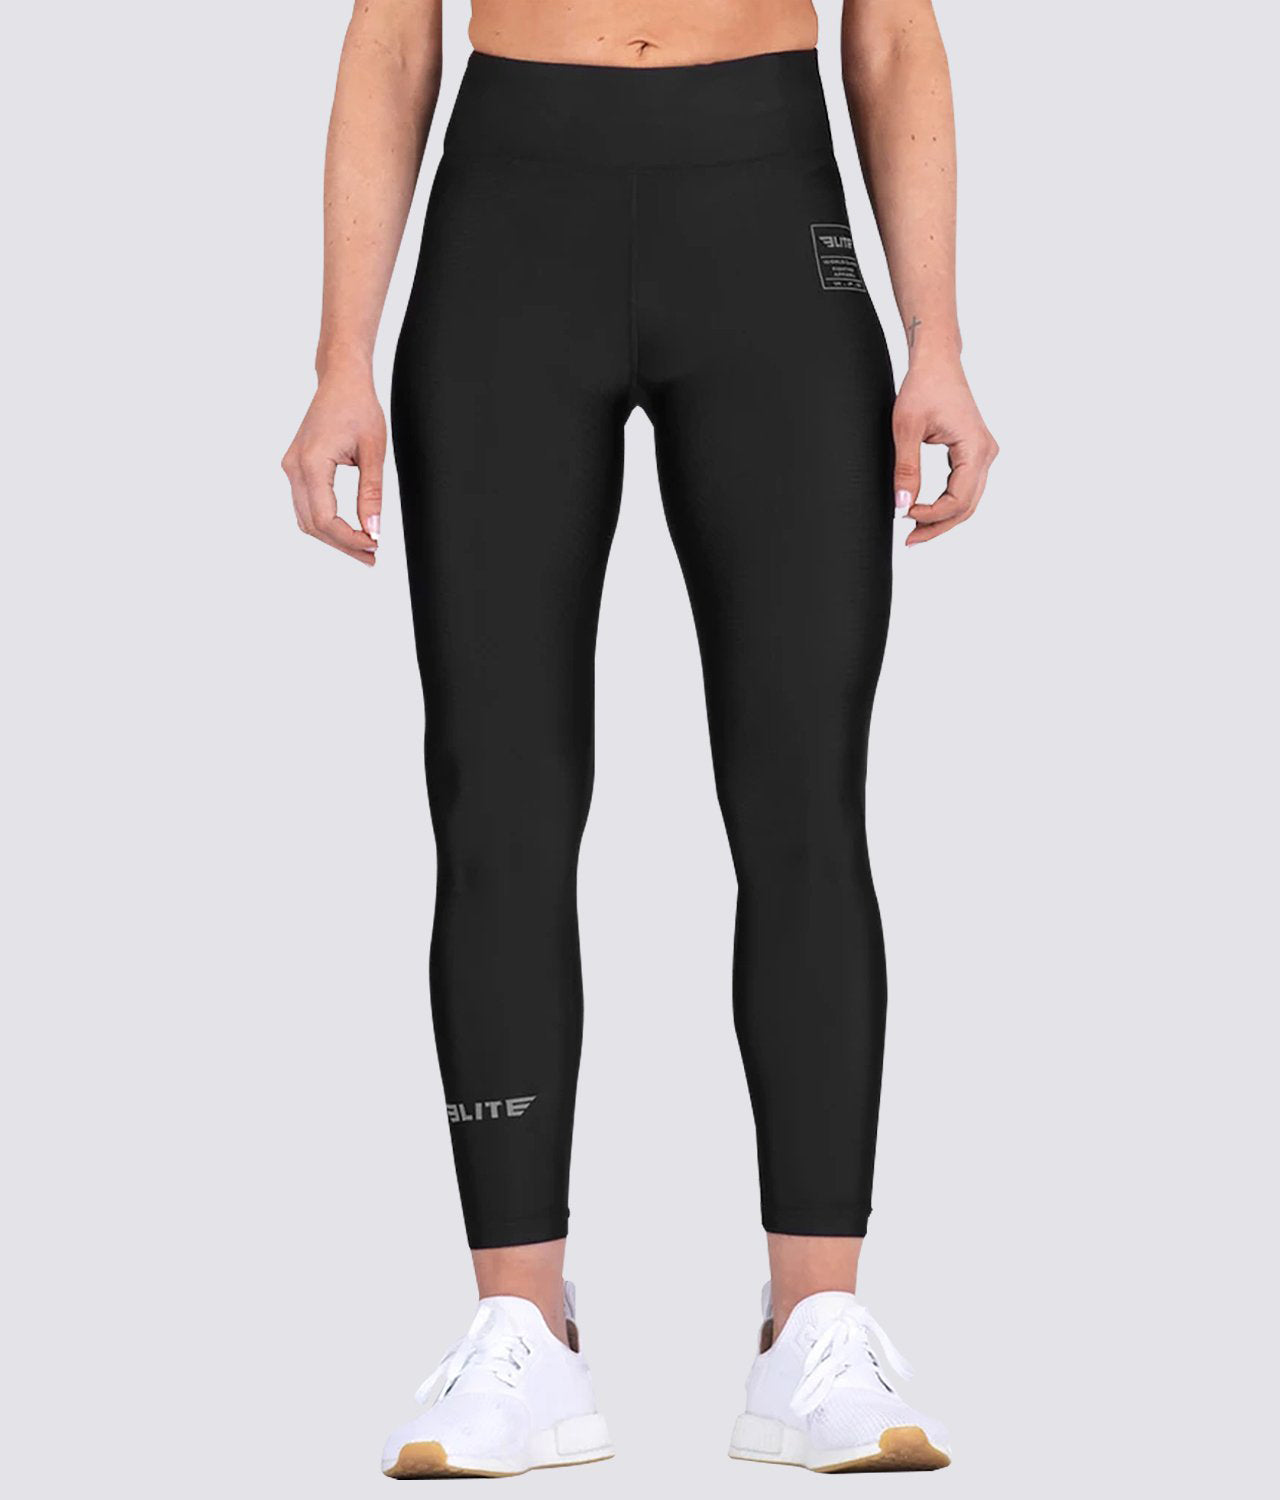 Elite Sports Black Women Compression Judo Spat Pants